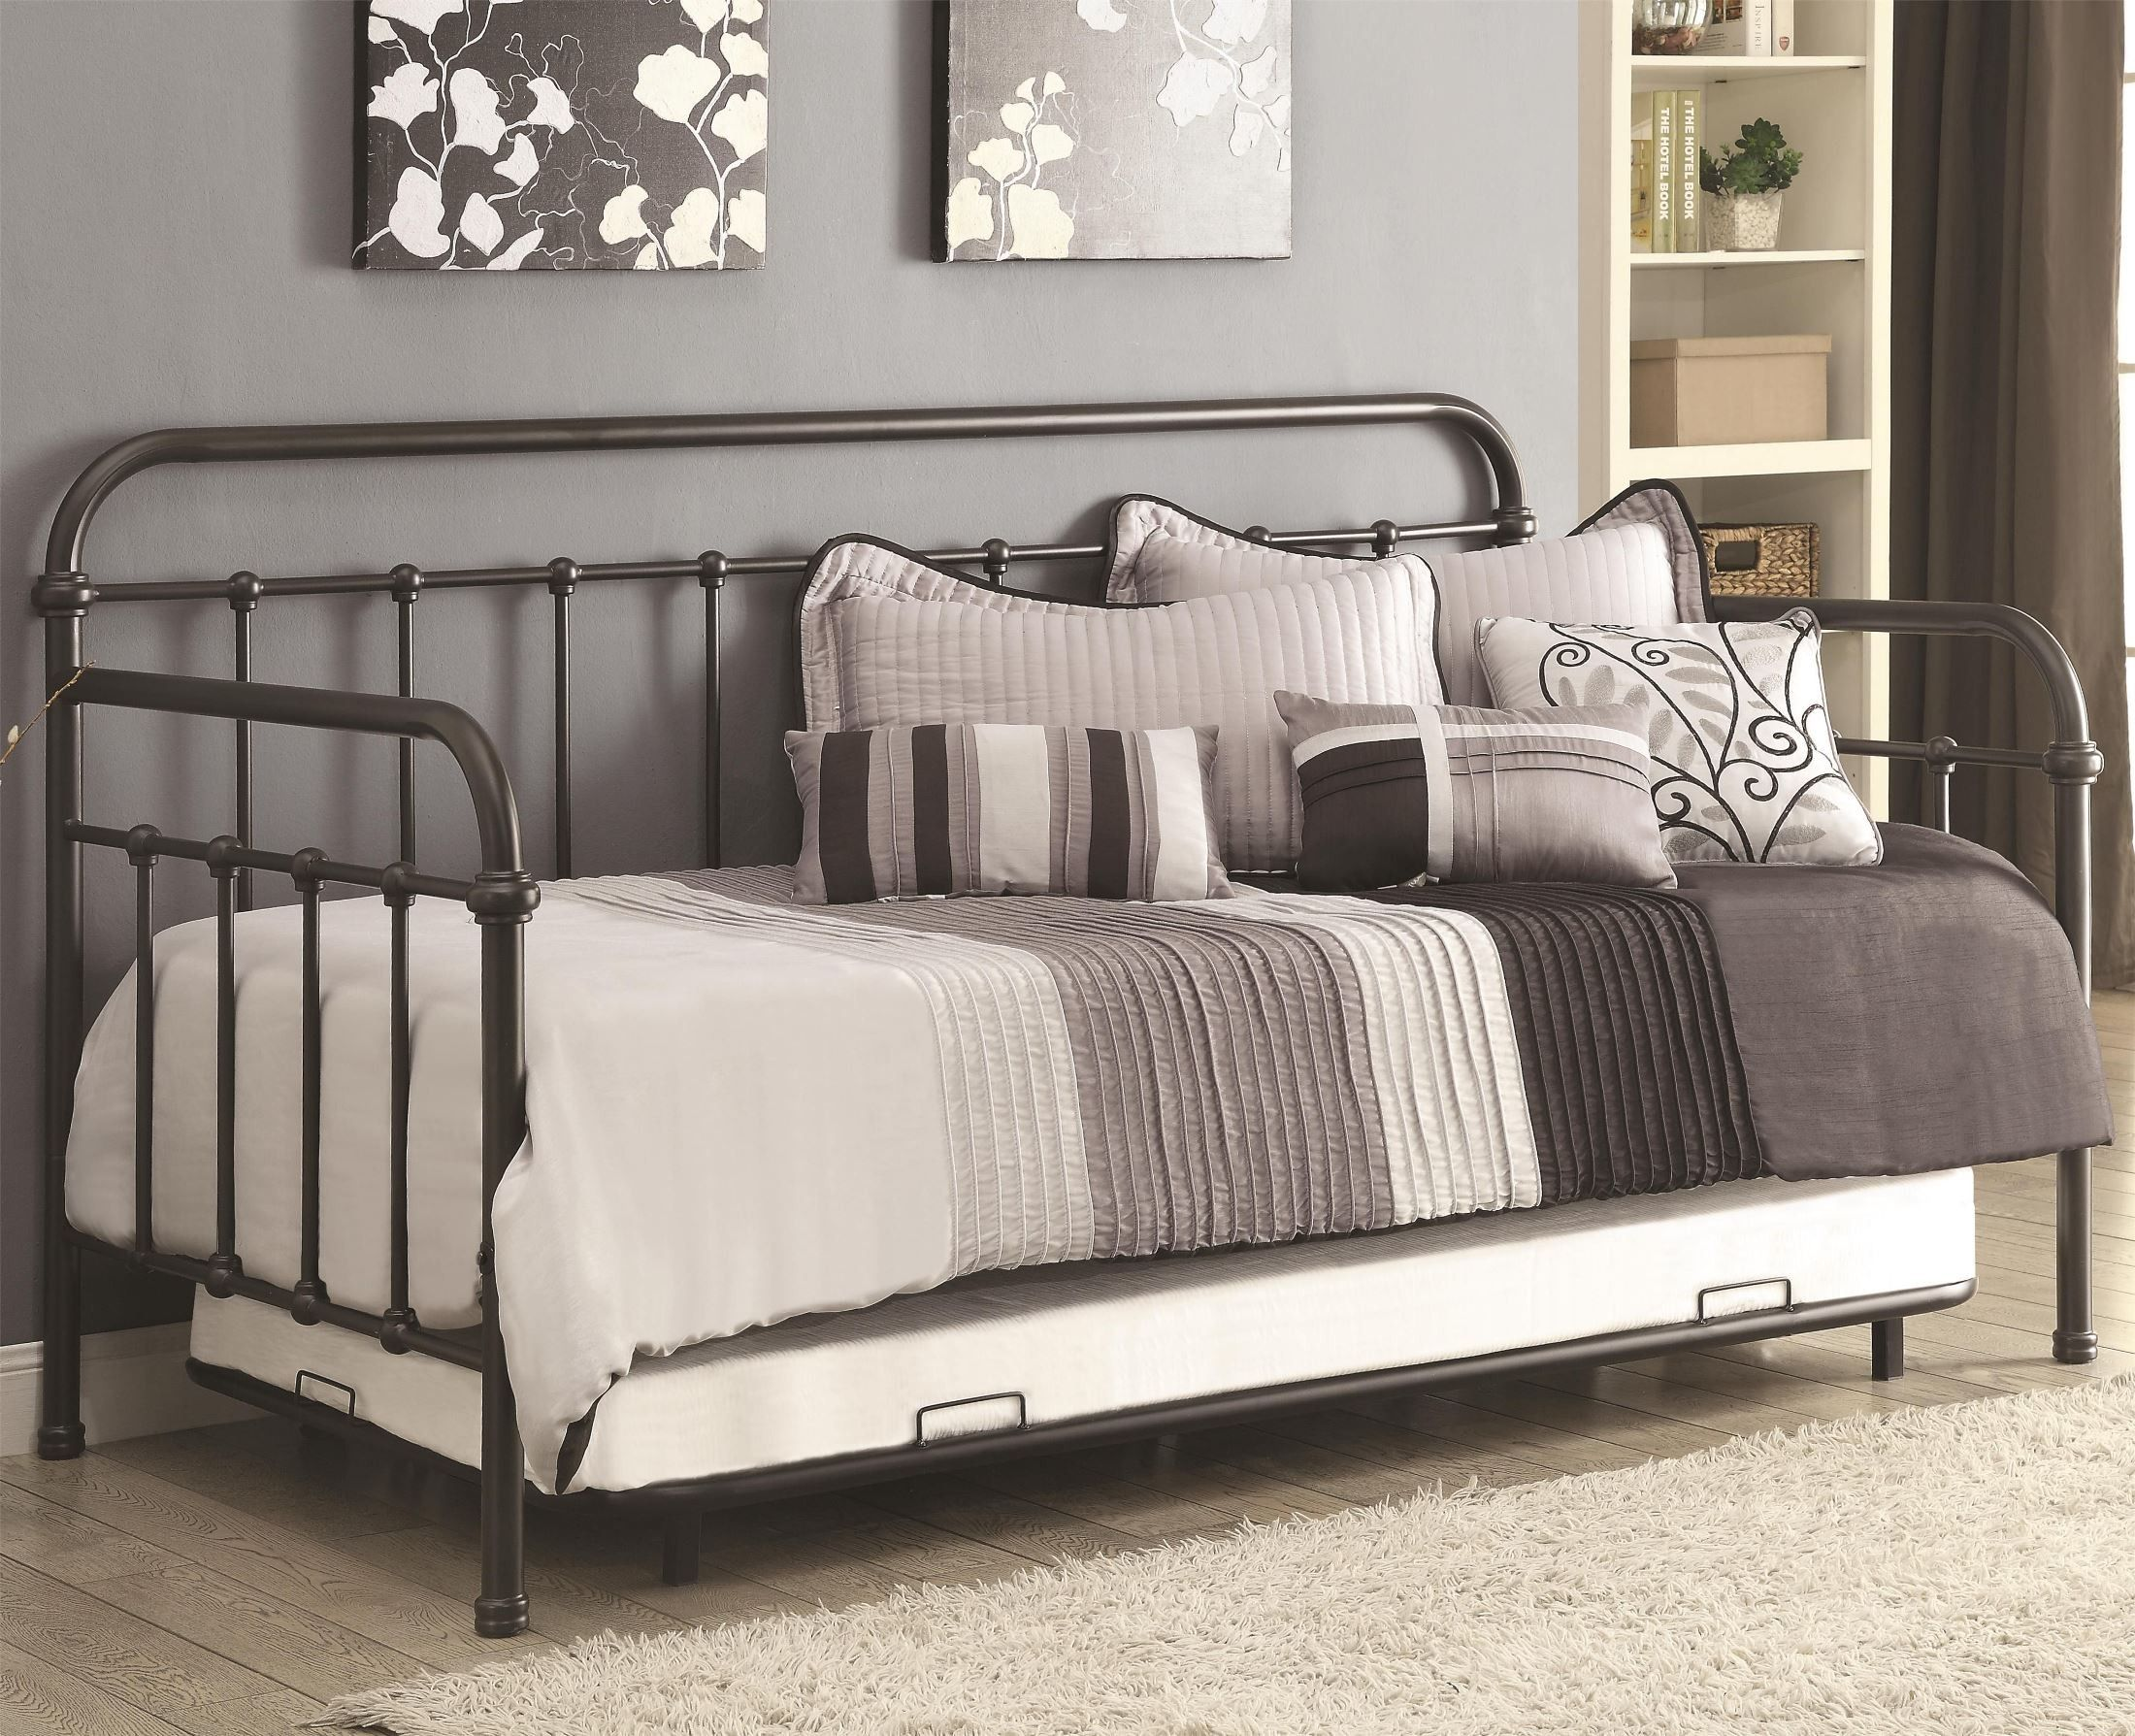 Day Bed Trundle Bed 300398 Dark Bronze Metal Daybed With Trundle Aspen 39s